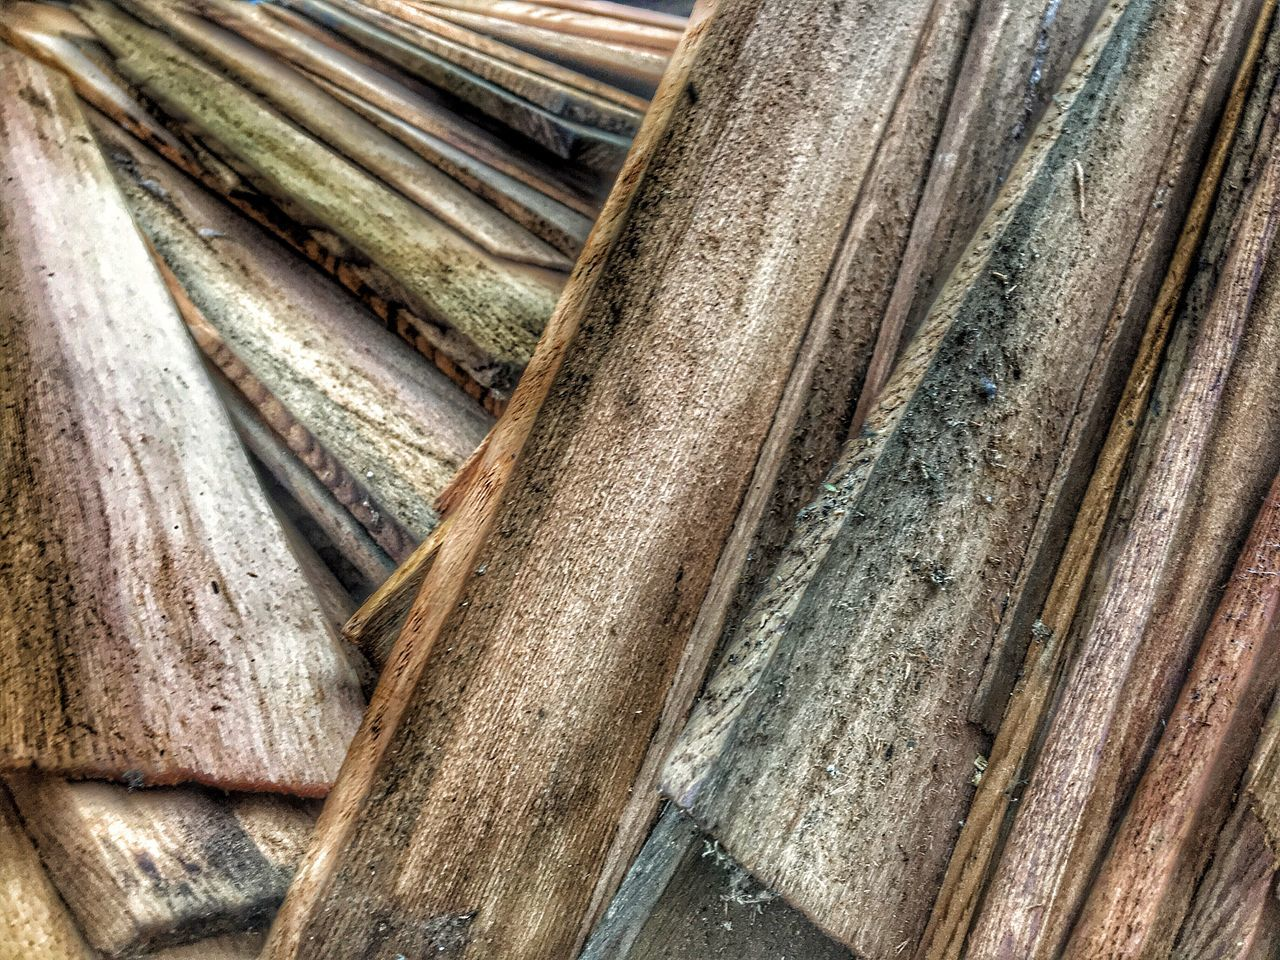 Wood - Material No People High Angle View Day Close-up Outdoors Textured  Backgrounds Used Shingles